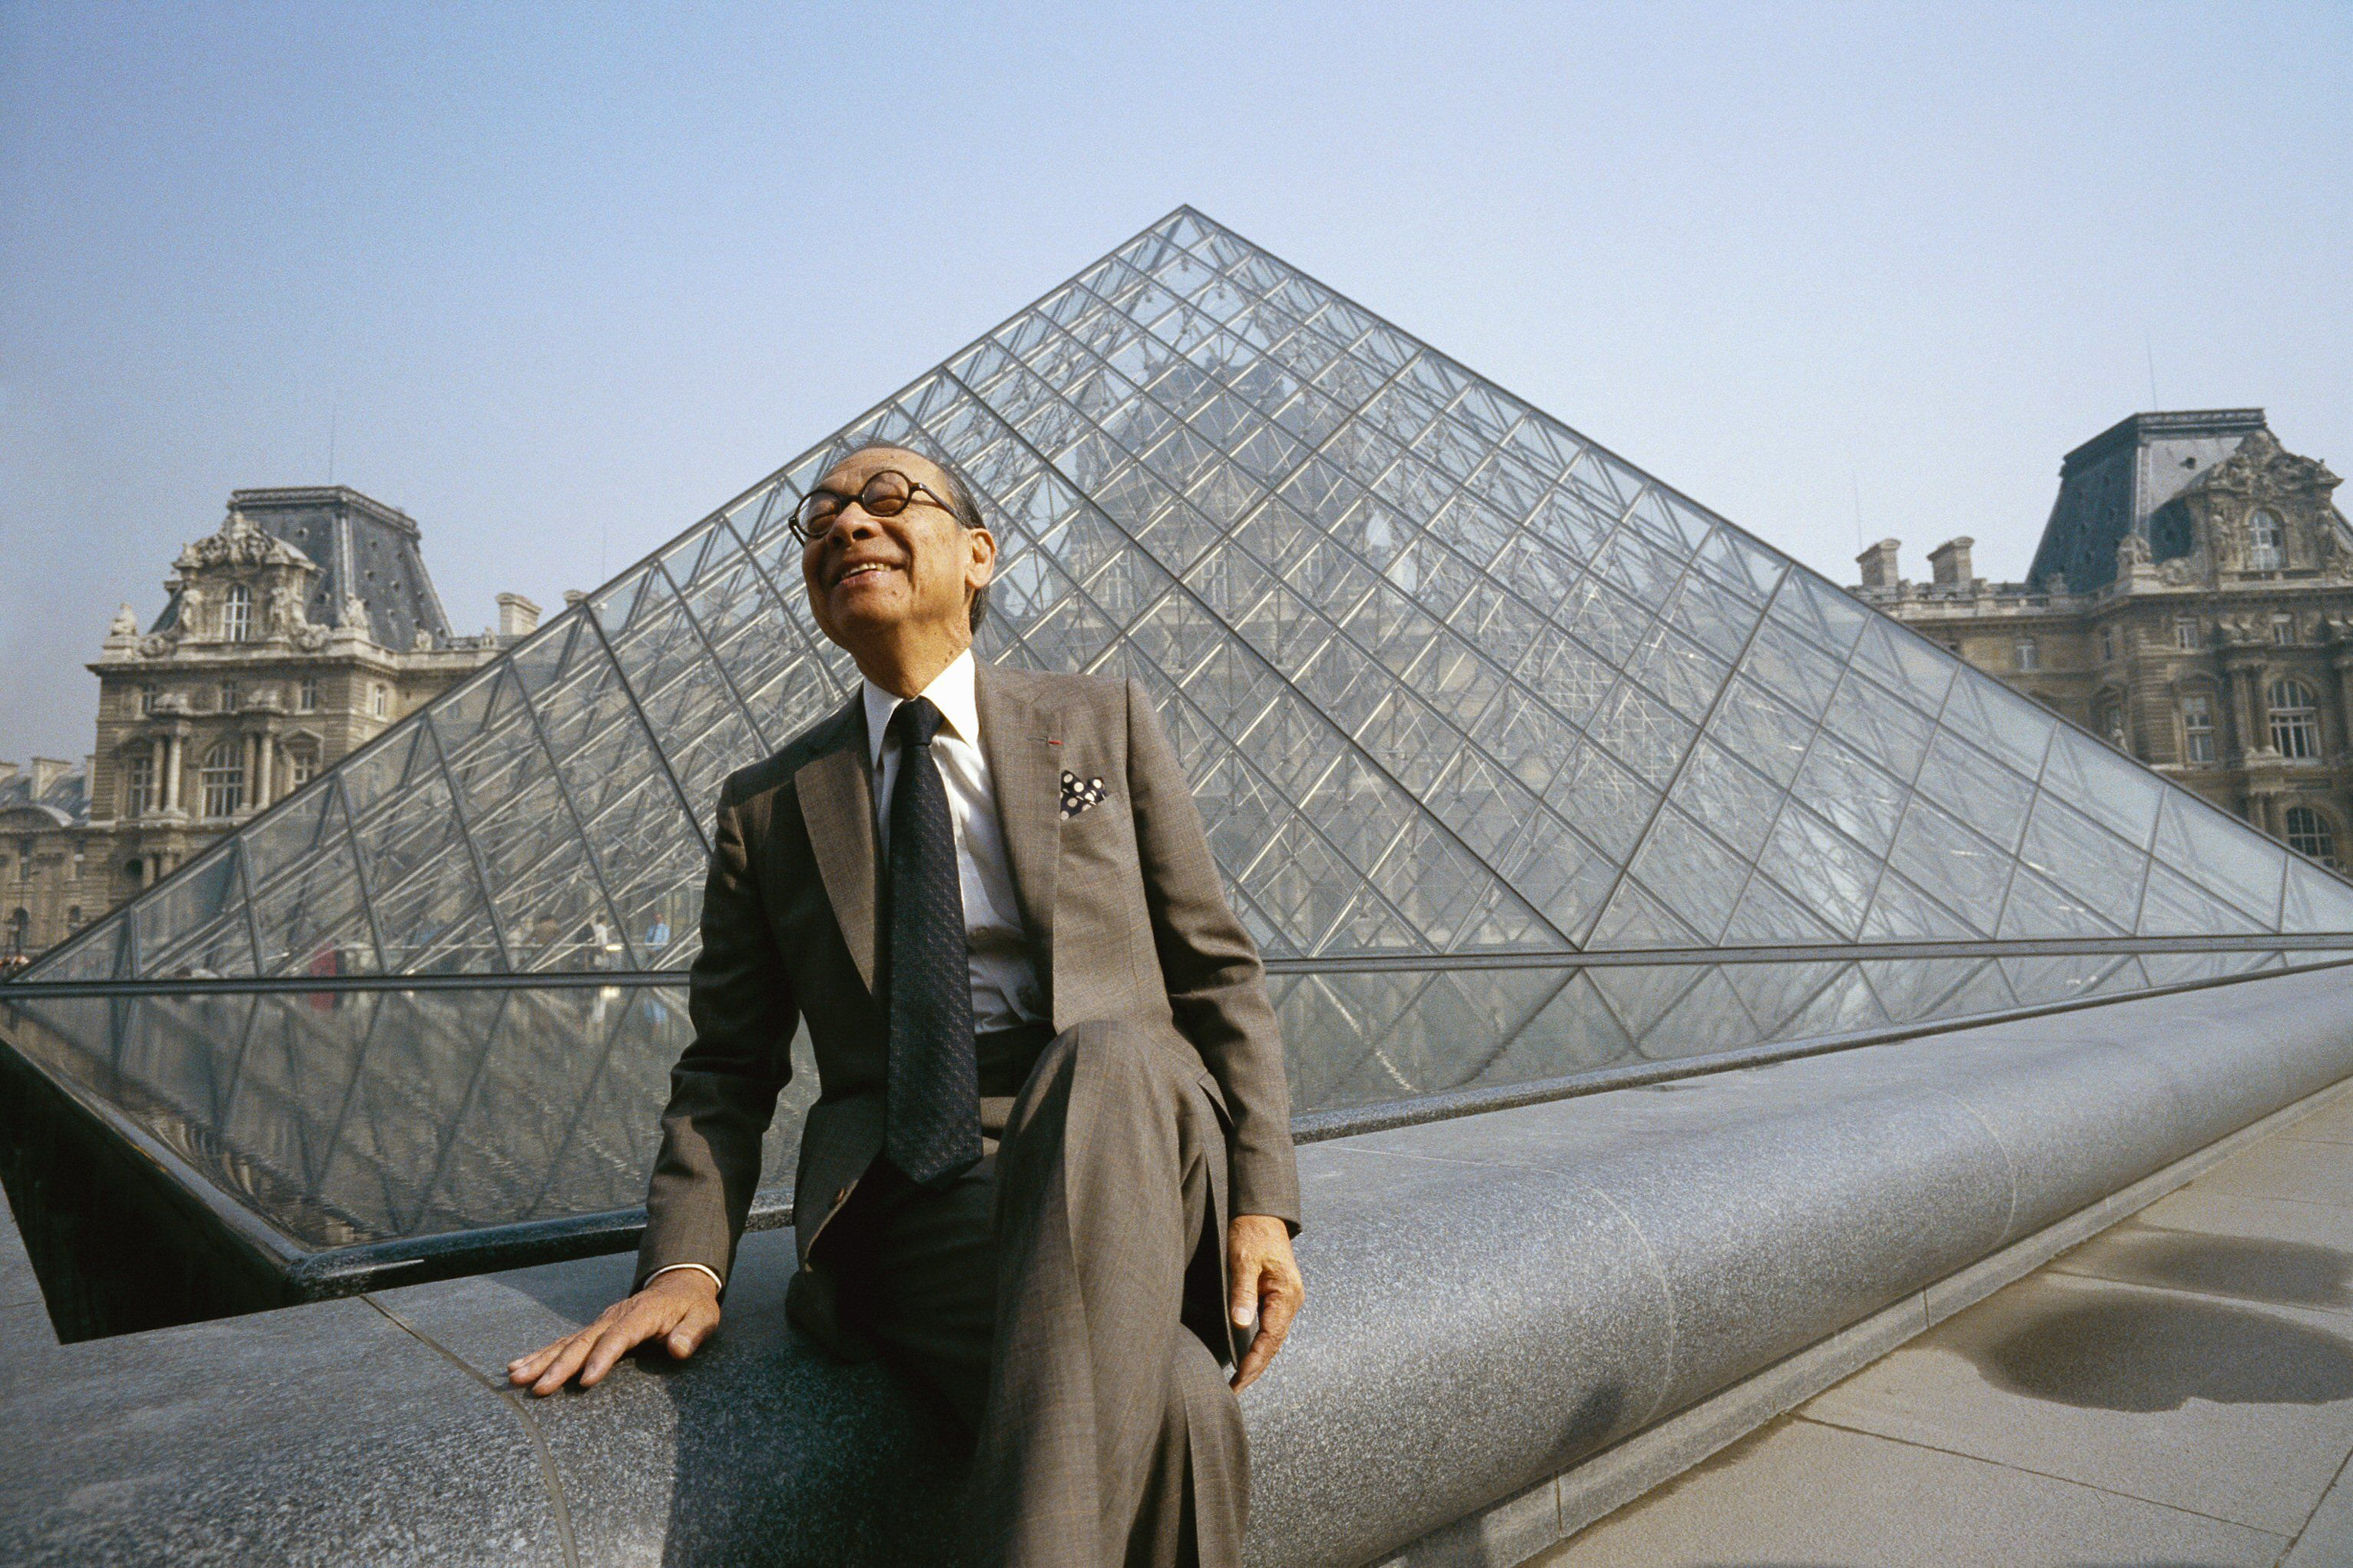 Chinese man in suit sitting in front of a large glass pyramid